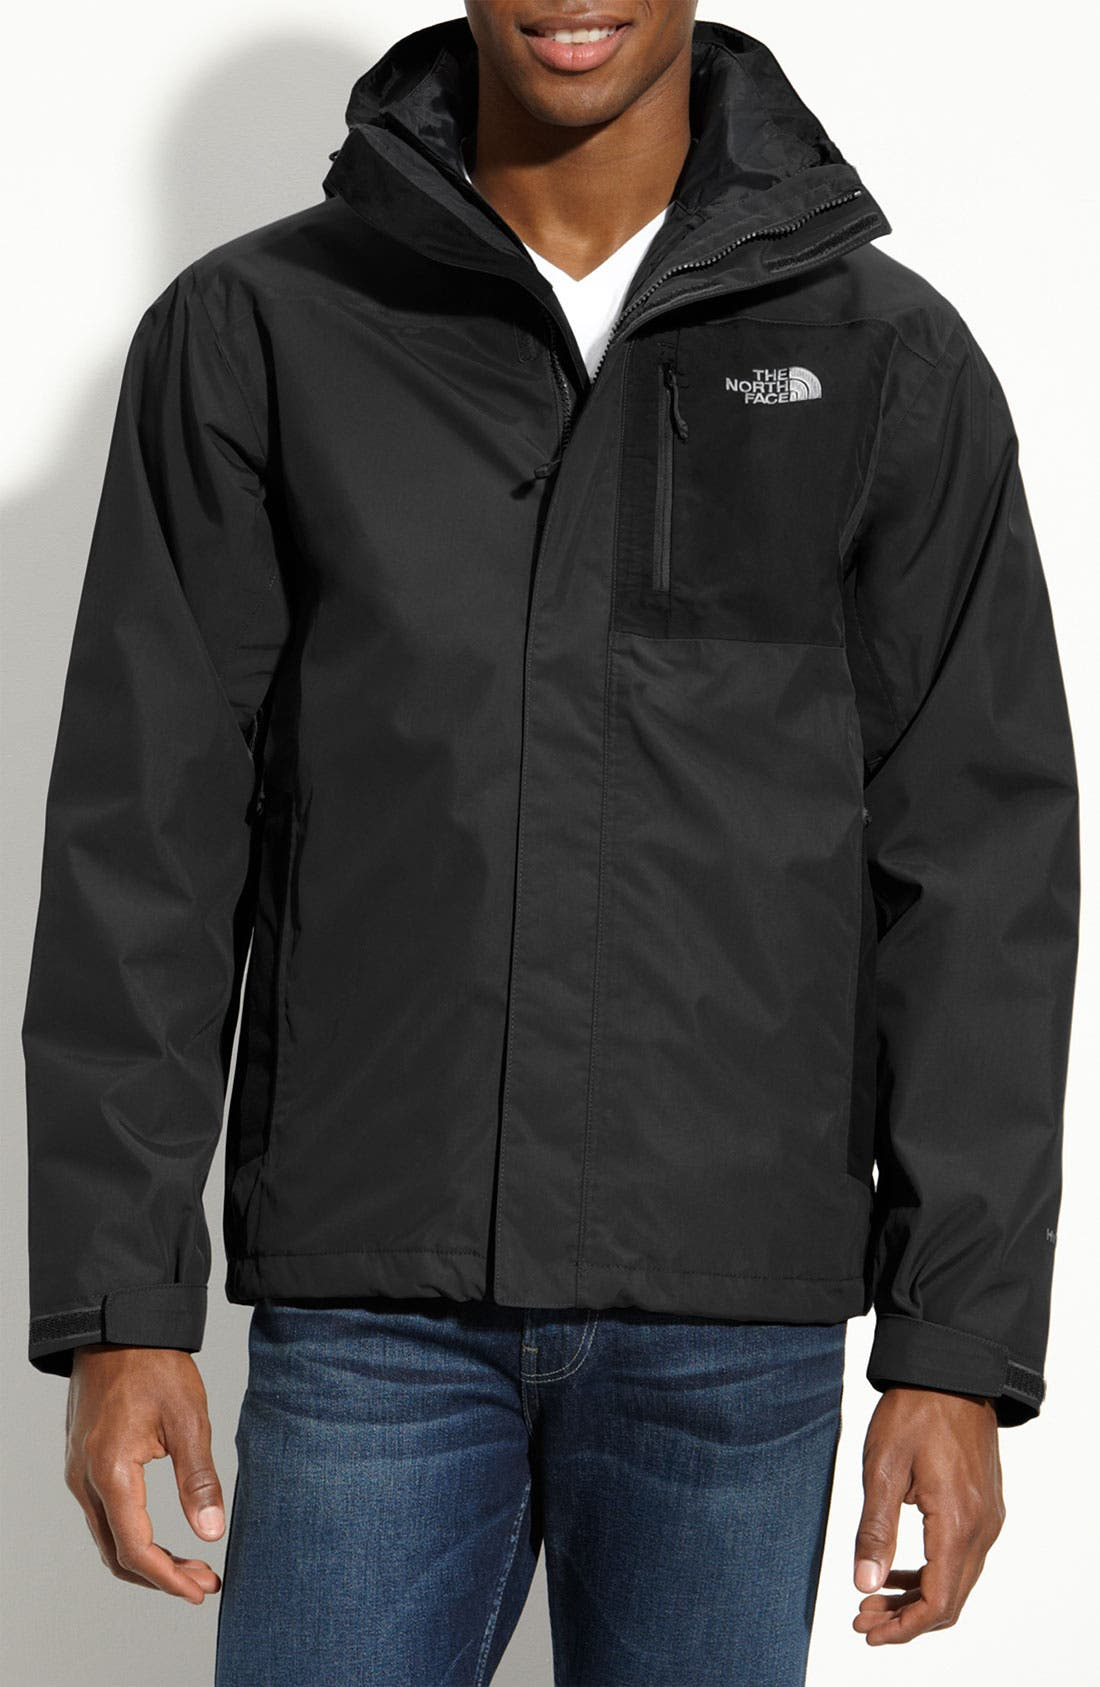 Main Image - The North Face 'Cassius' TriClimate® 3-in-1 Jacket